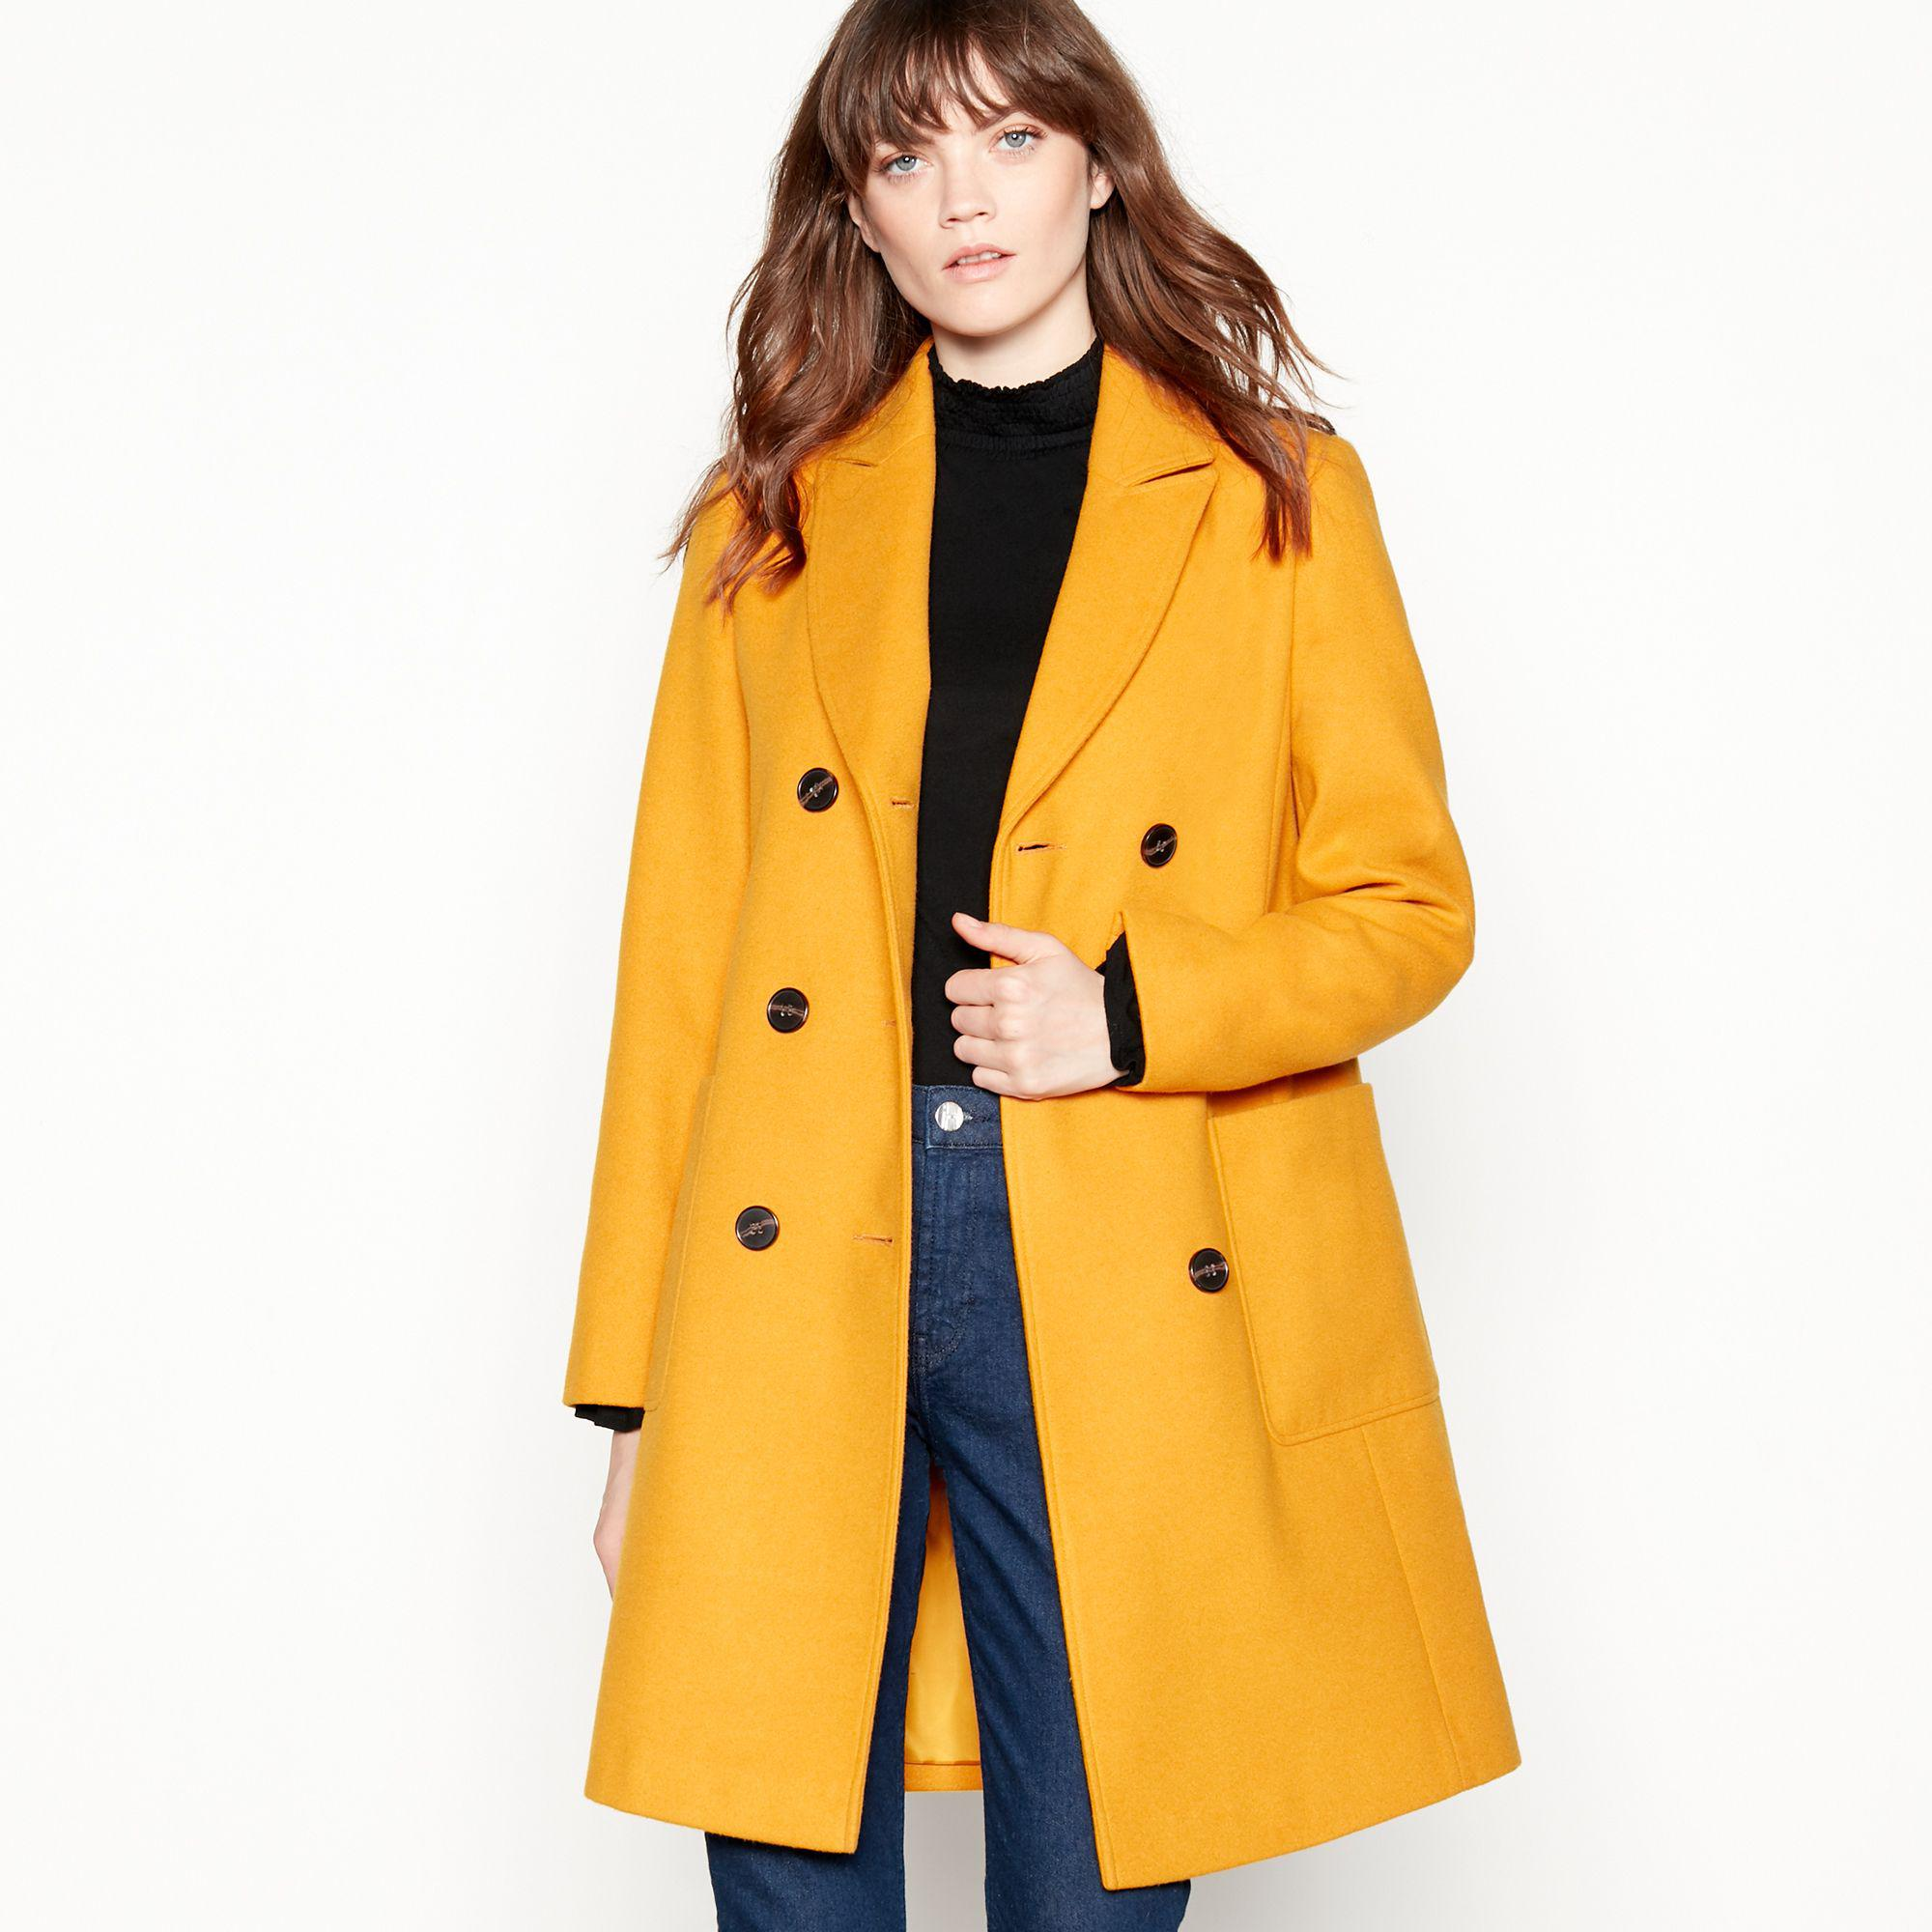 b5d89272c246 Red Herring Yellow Utility Double Breasted Coat in Yellow - Lyst